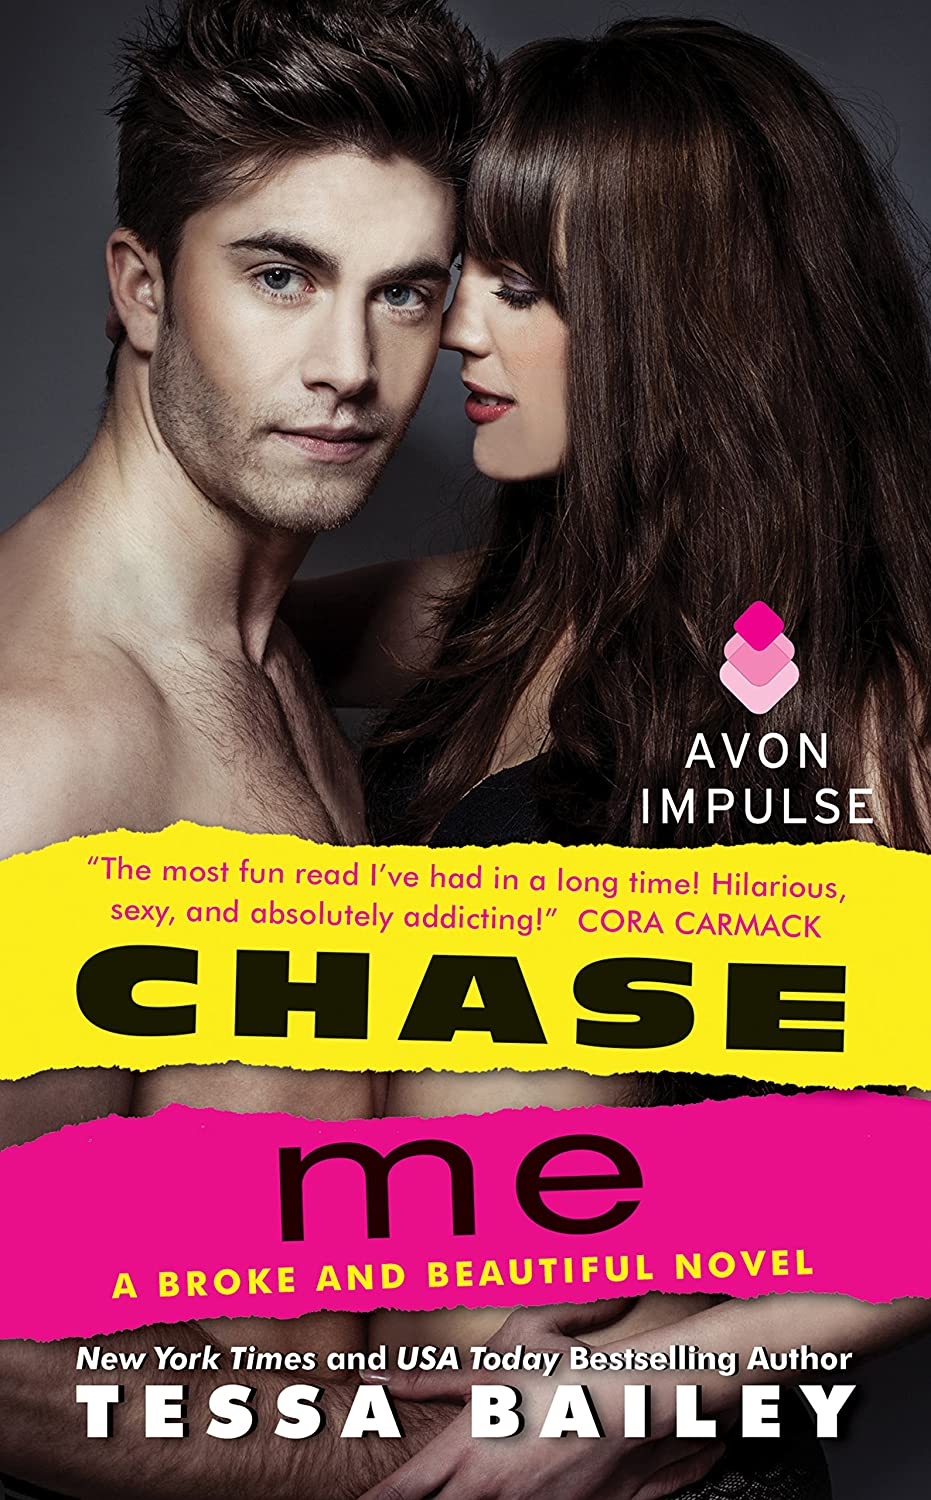 Chase Me: A Broke and Beautiful Novel - Tessa Bailey